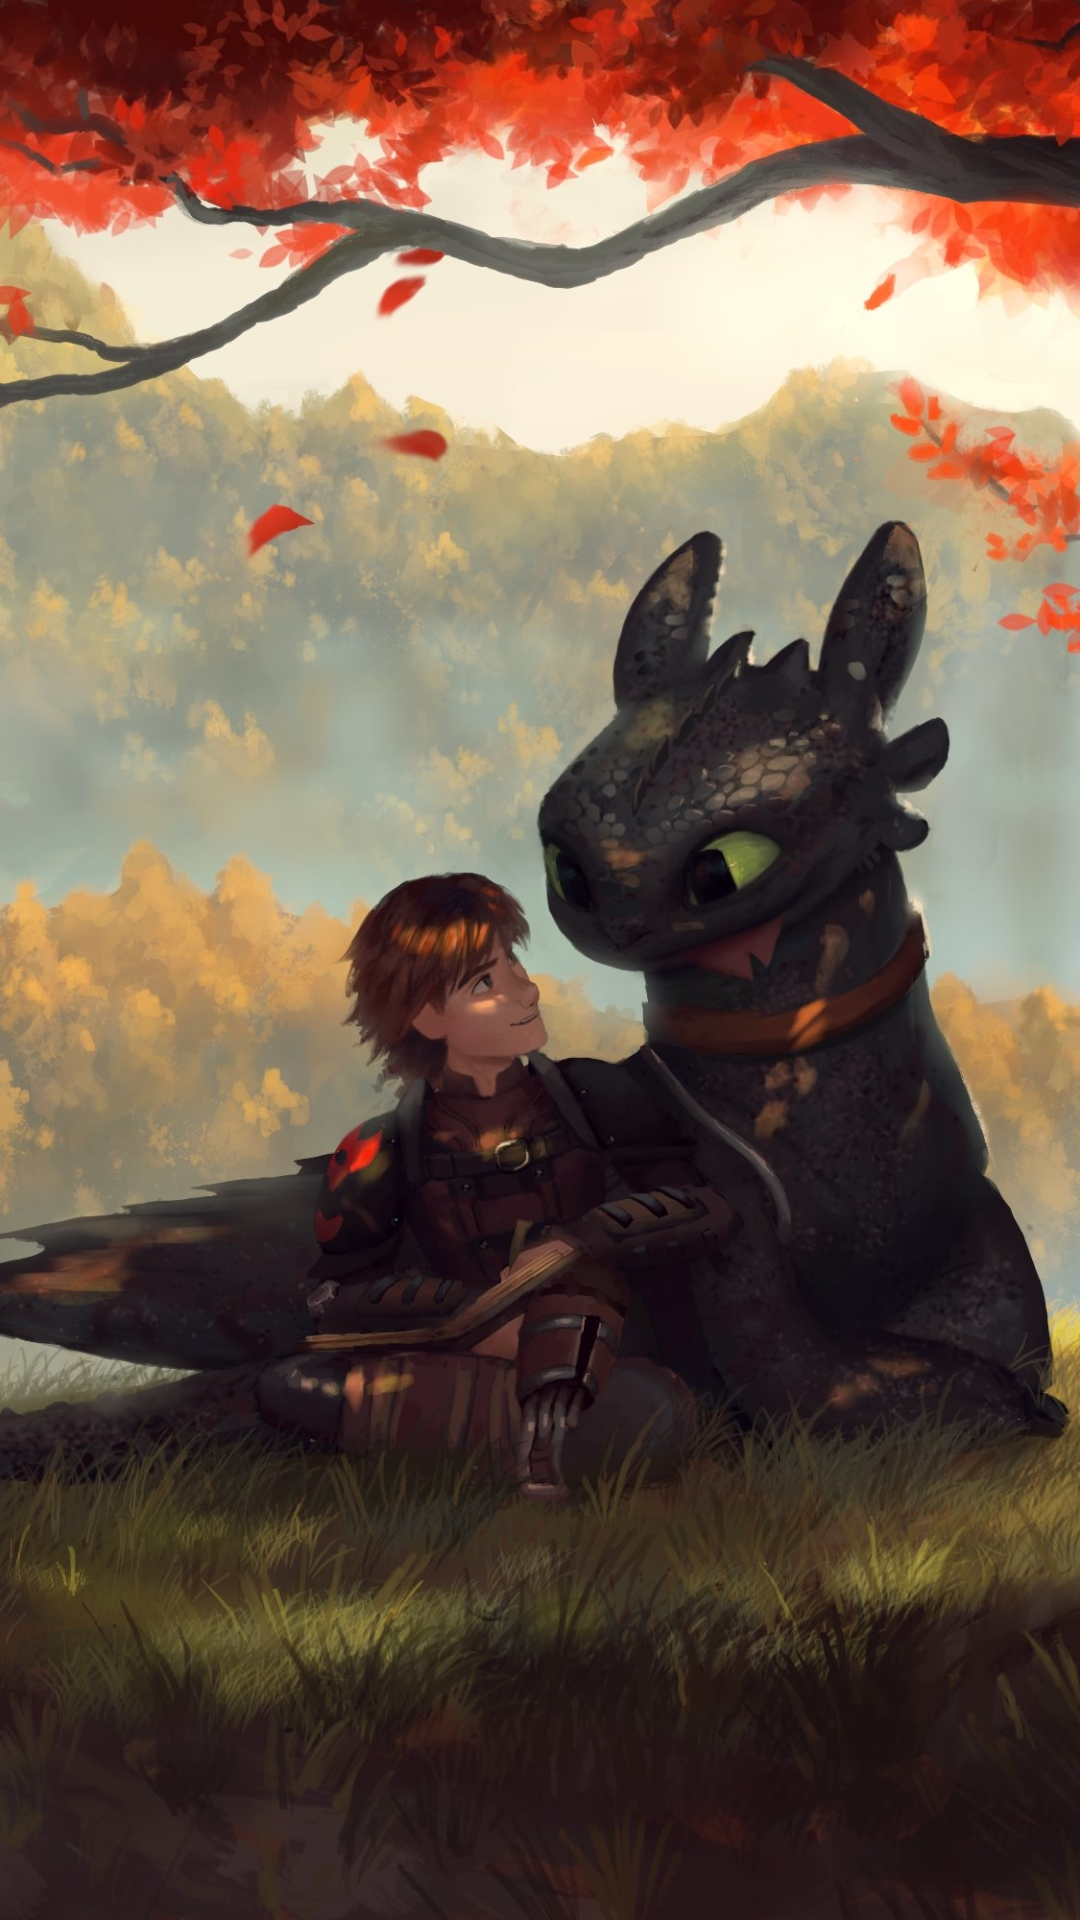 Movie How To Train Your Dragon 1080x1920 Wallpaper Id 804000